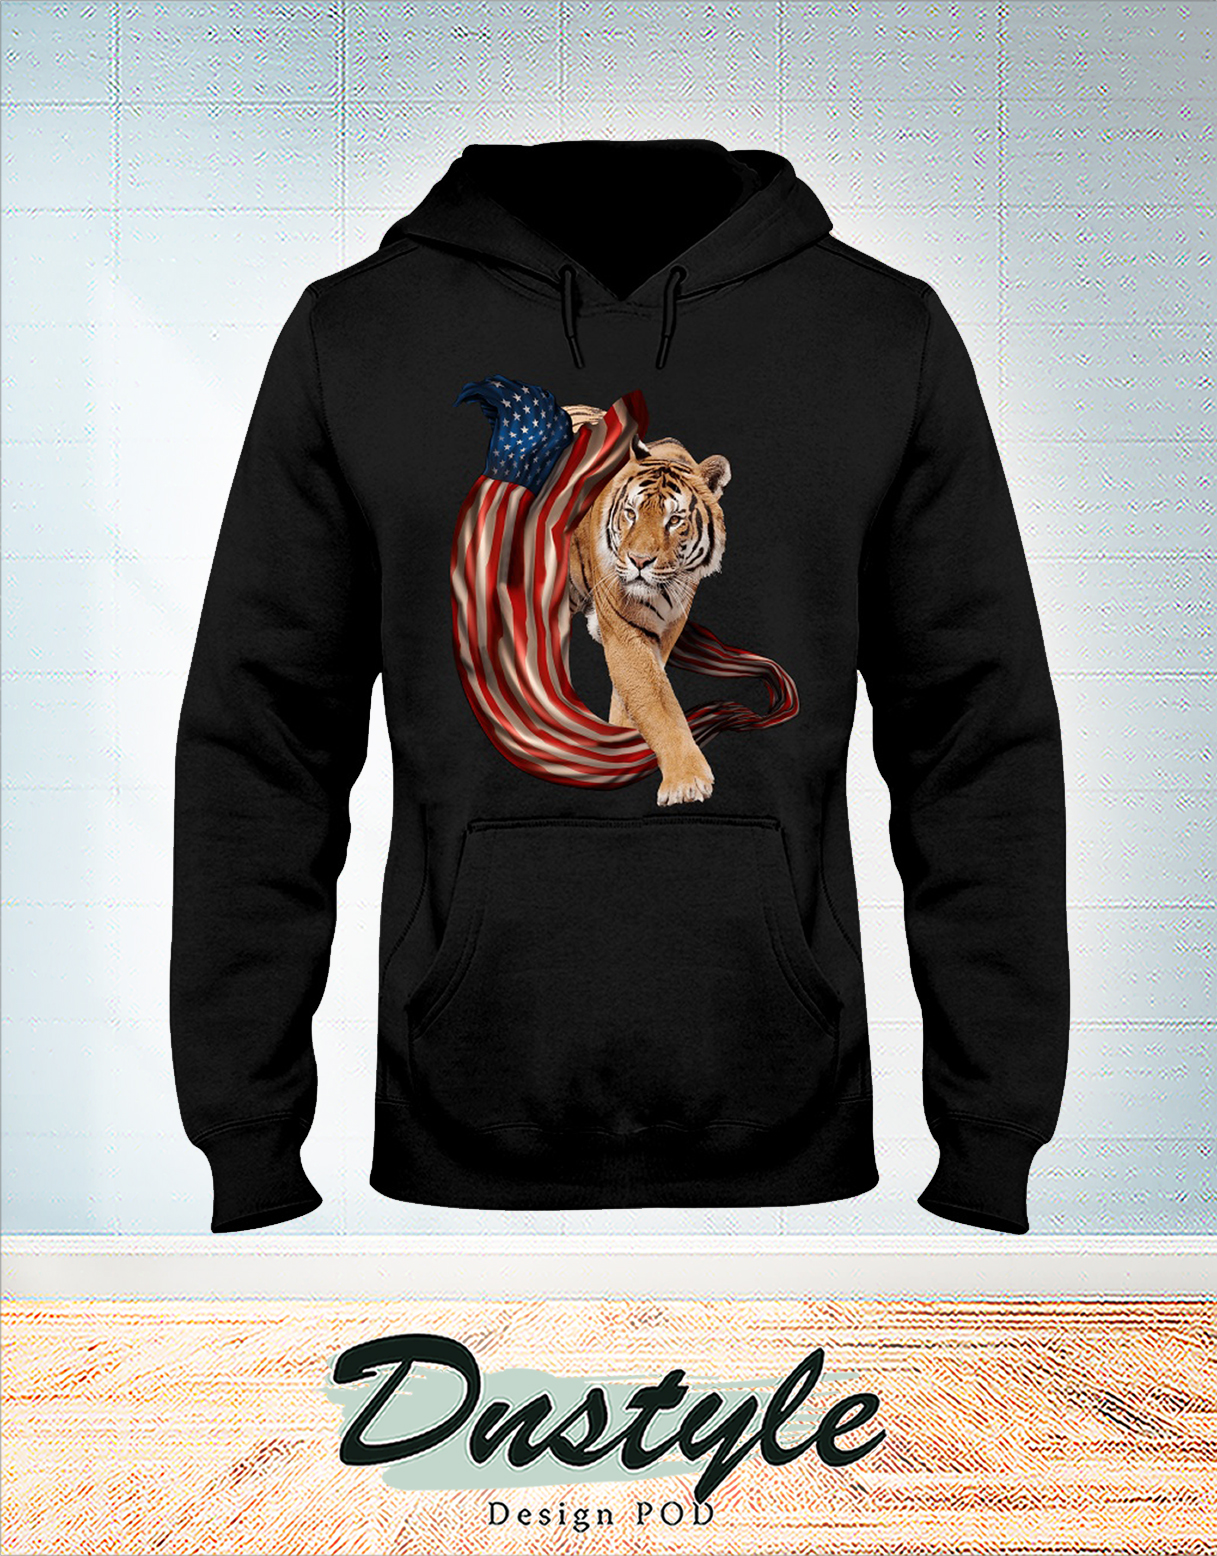 Tiger cool and freedom 4th july hoodie